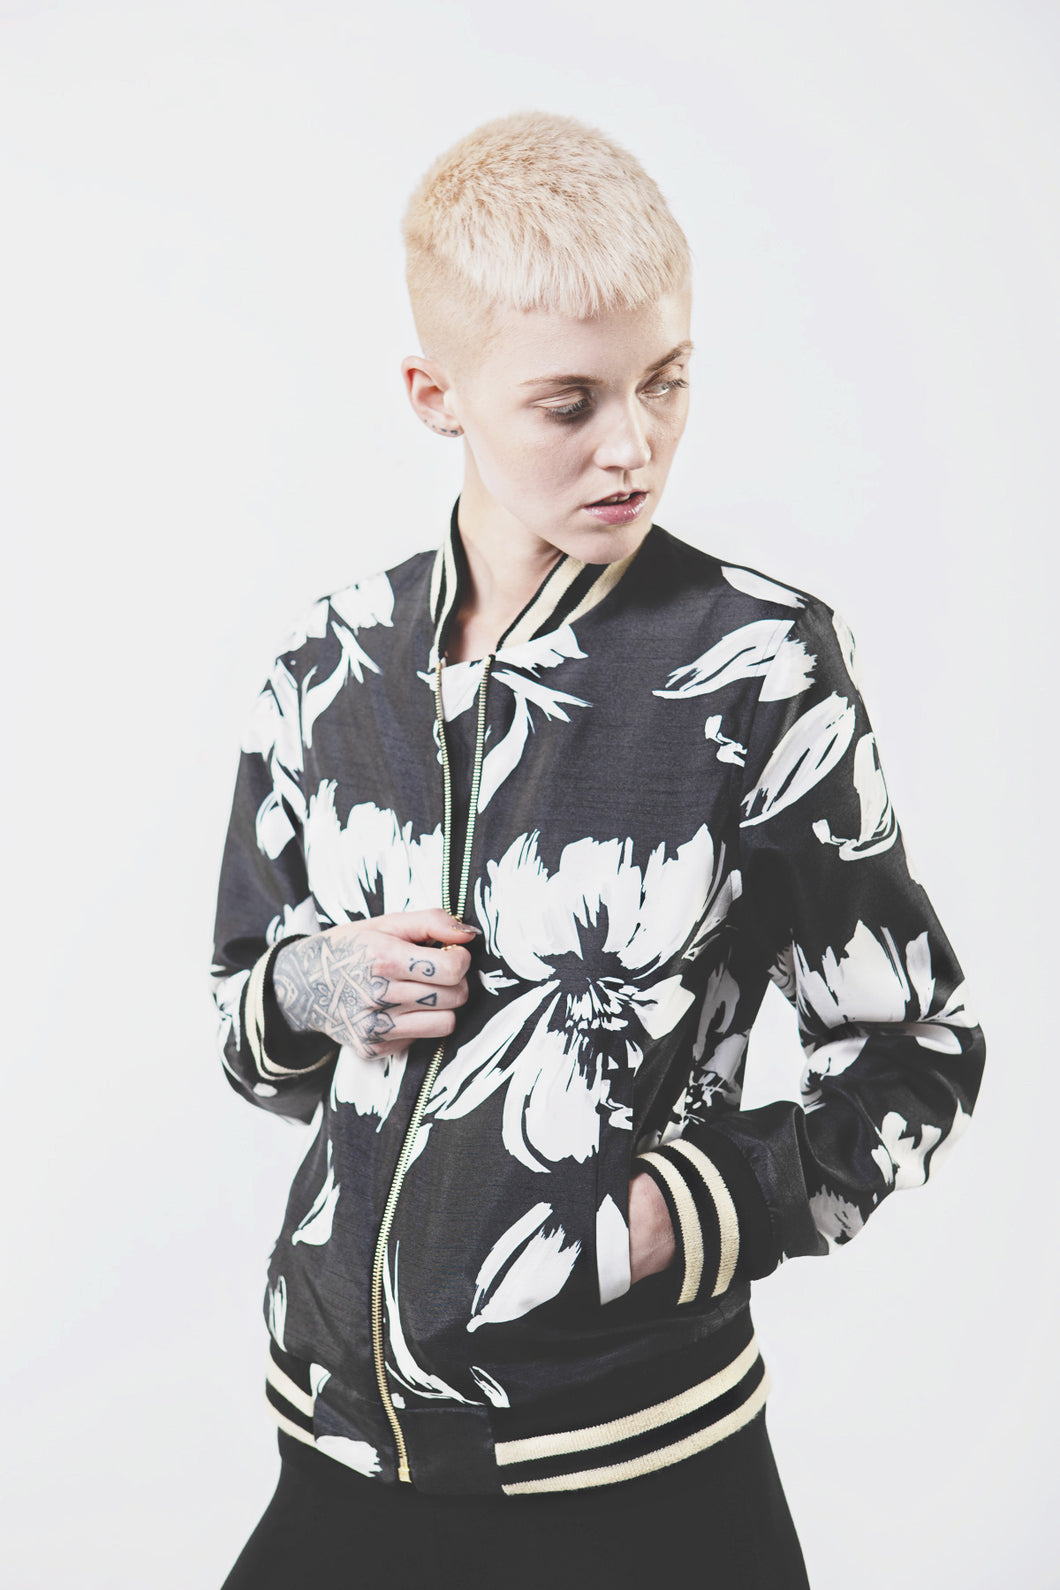 Wolf + Candor The Kendrick Jacket in Floral - Bomber jacket